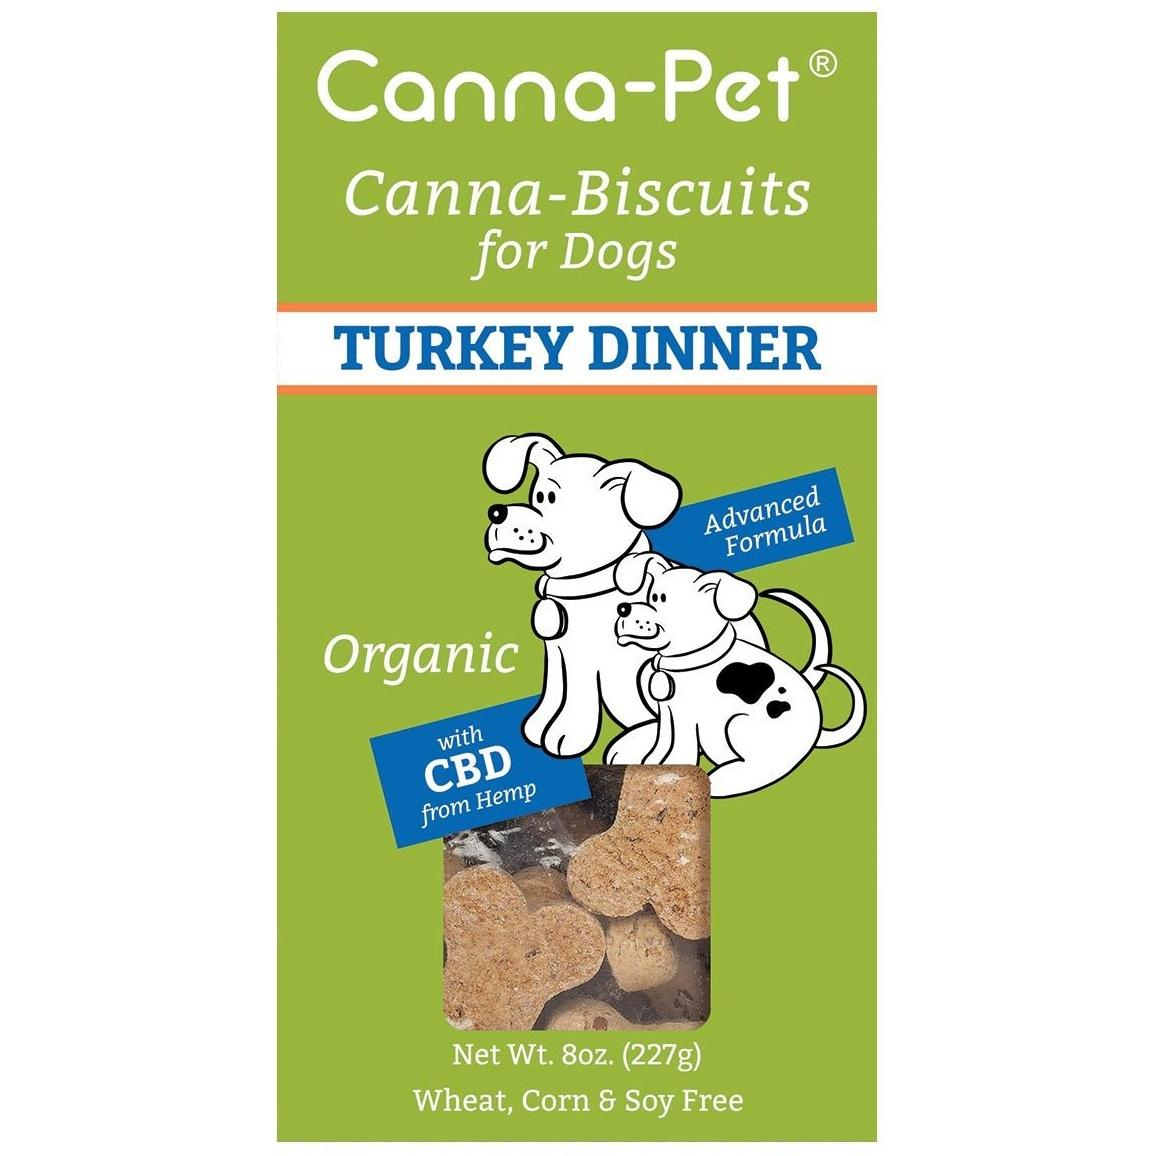 Canna-Biscuits for Dogs - Turkey Dinner - Robinsons Nest